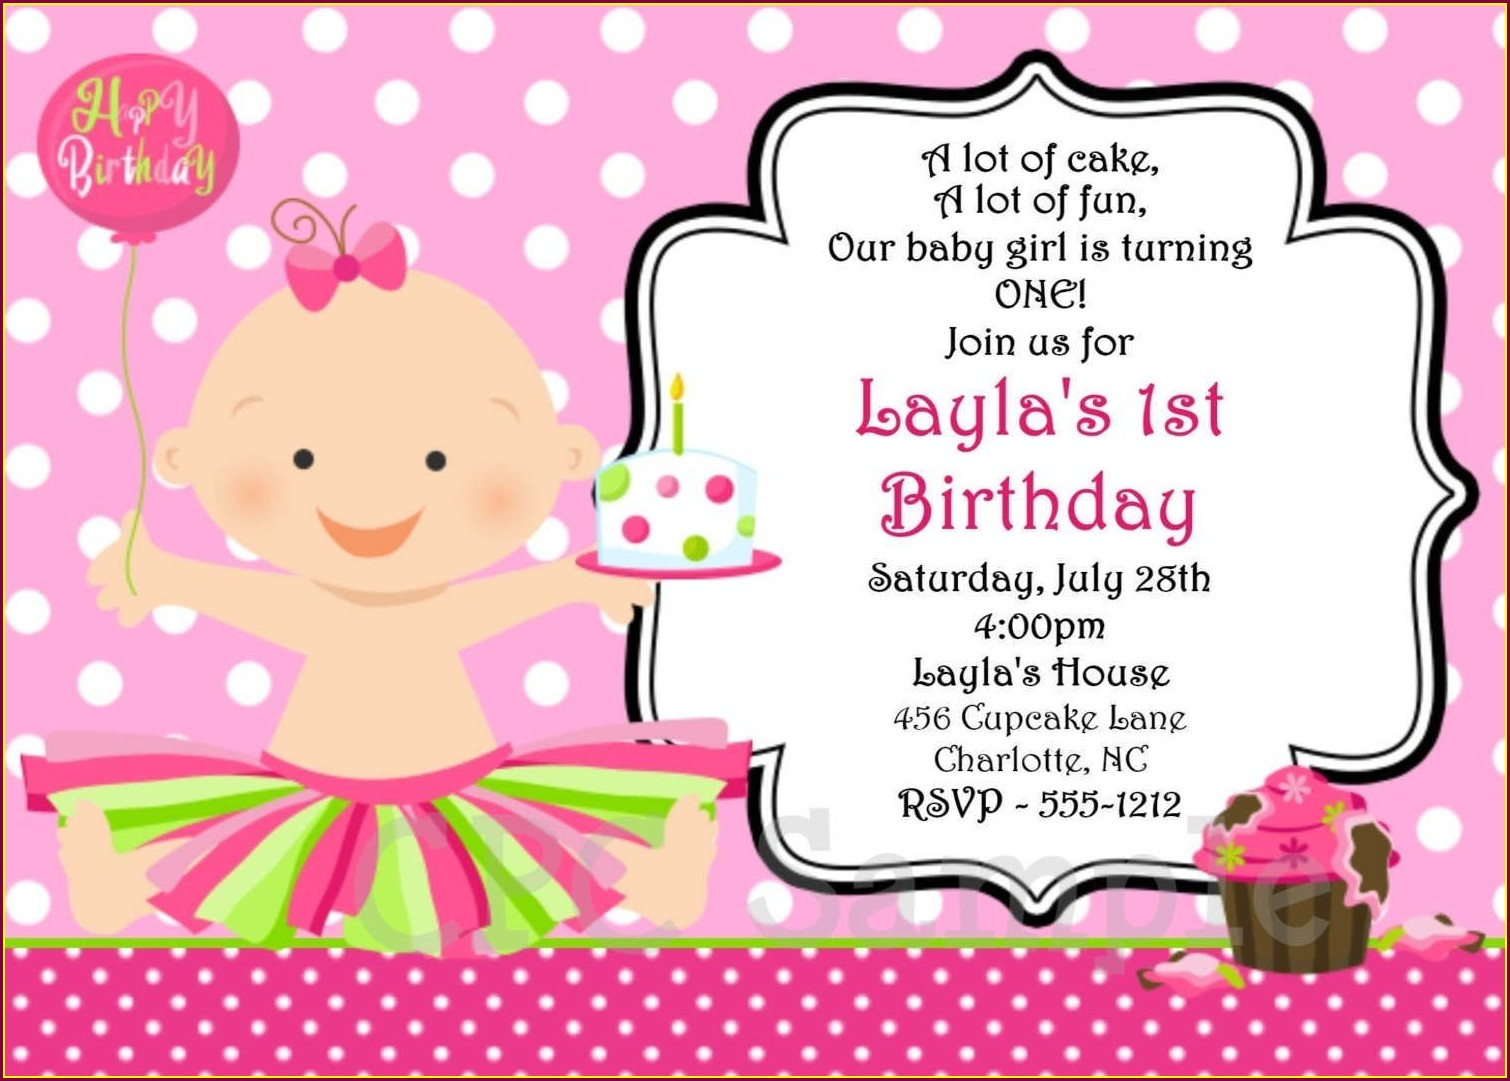 Invitation Template Create Birthday Invitation Card Online Free